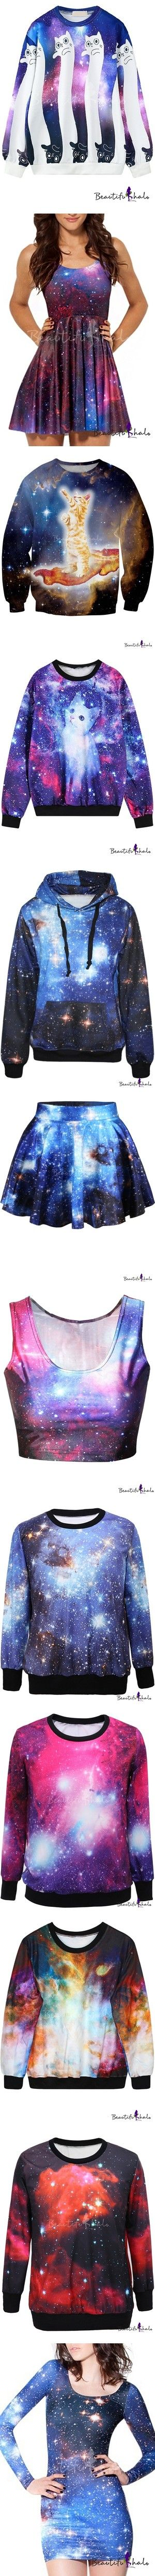 galaxy collection by rebecca-bh on Polyvore featuring tops, hoodies, sweatshirts, sweat shirts, cat hoodies, long sleeve tops, long sleeve hoodie, galaxy hoodie, dresses and purple tank dress